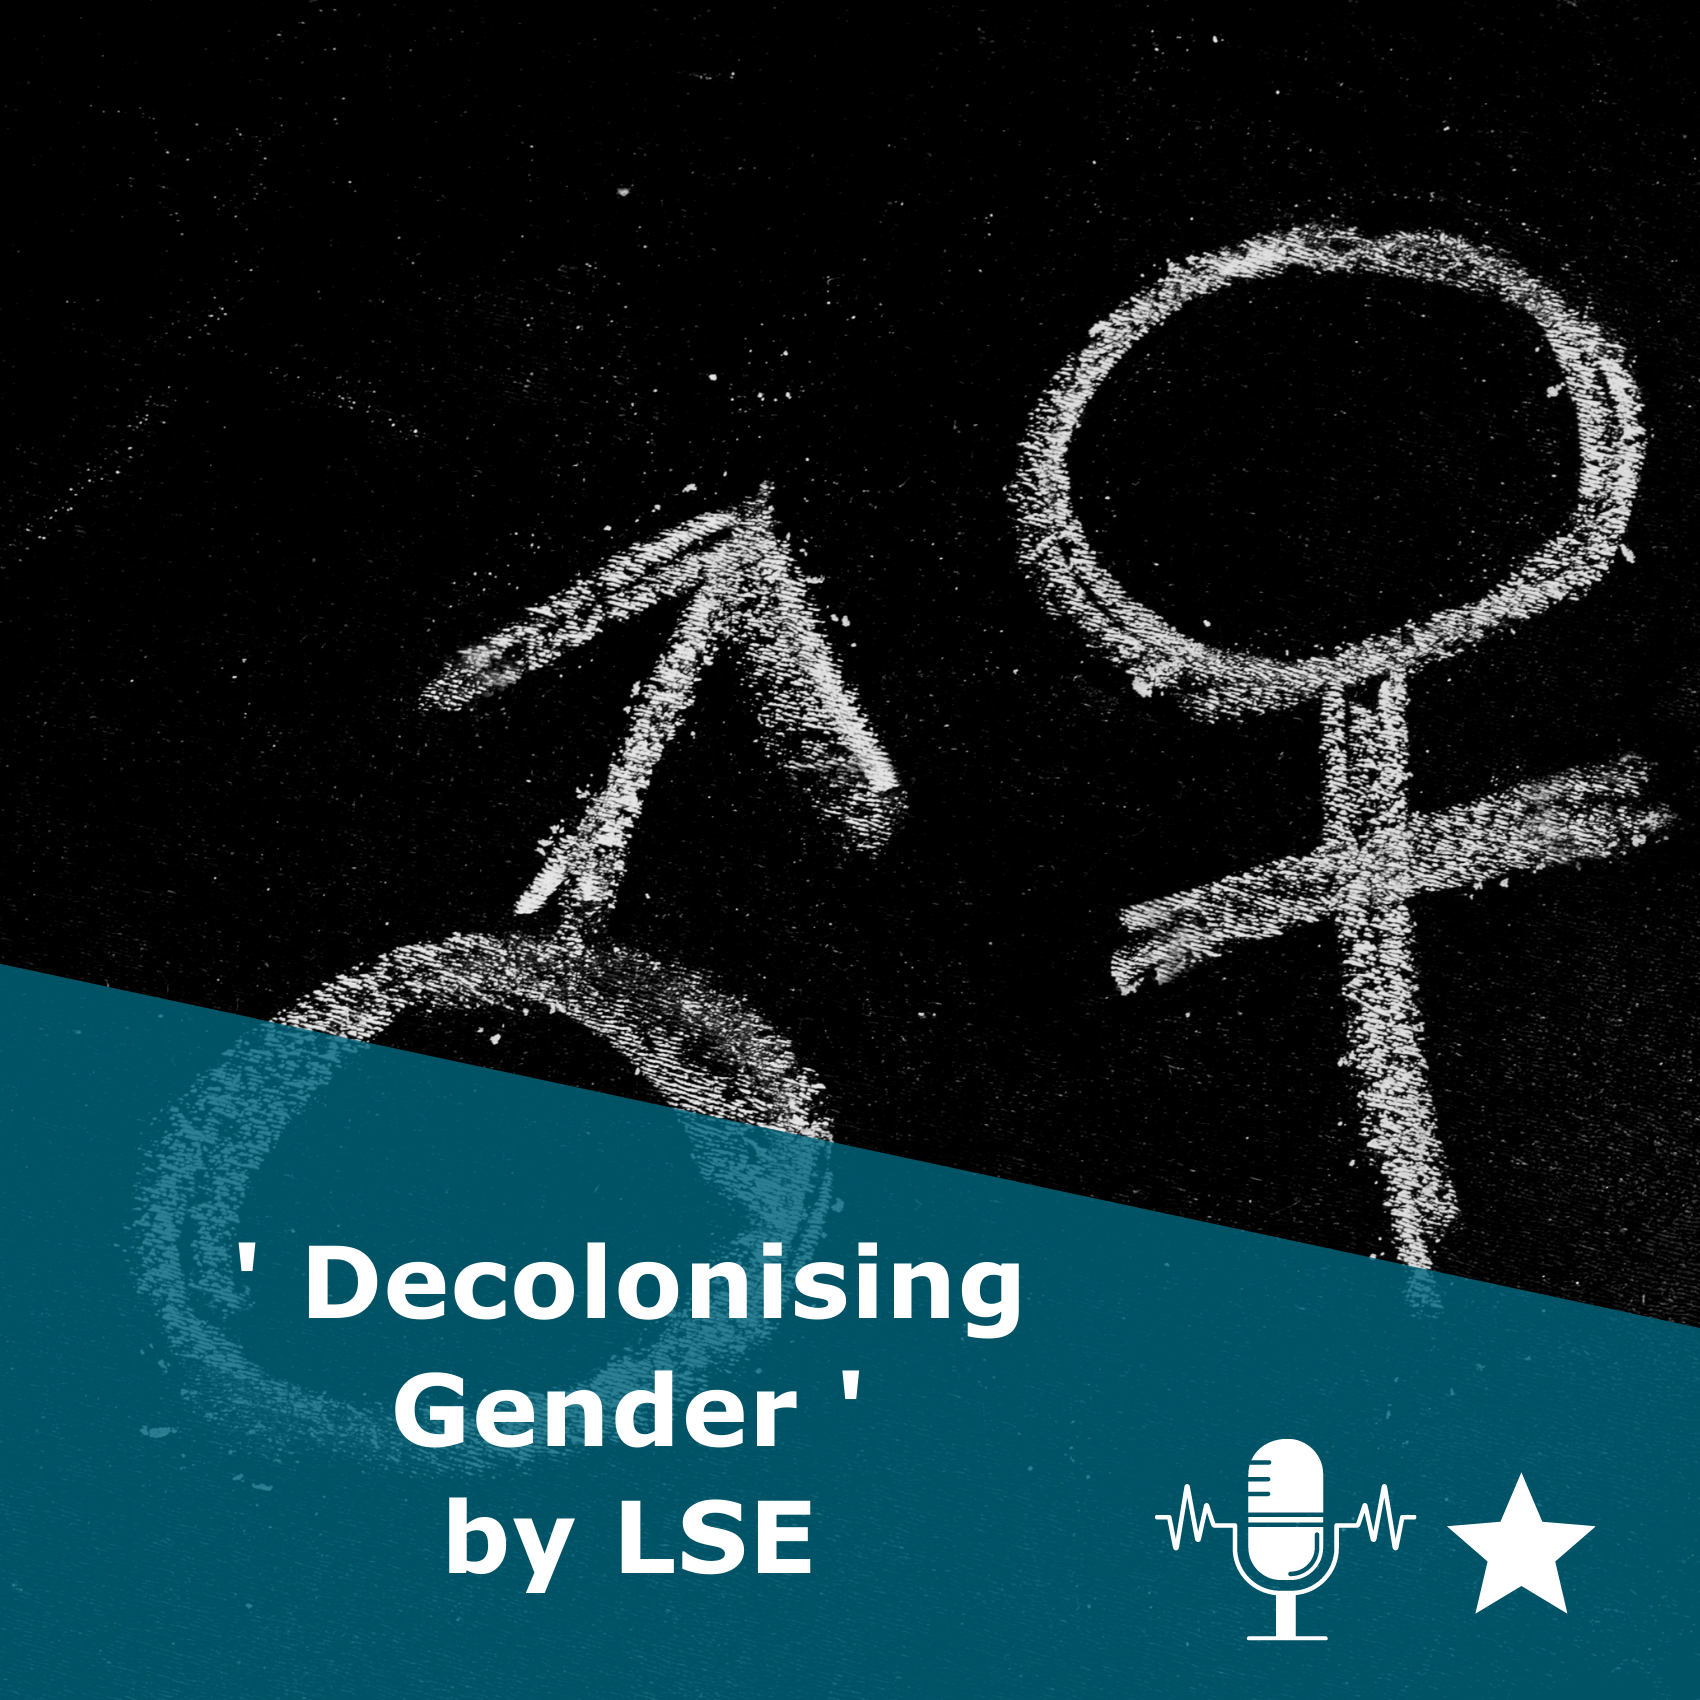 Picture of gender symbols in black and white. Title 'Decolonising Gender' by LSE. It is a podcast rated 1 star.